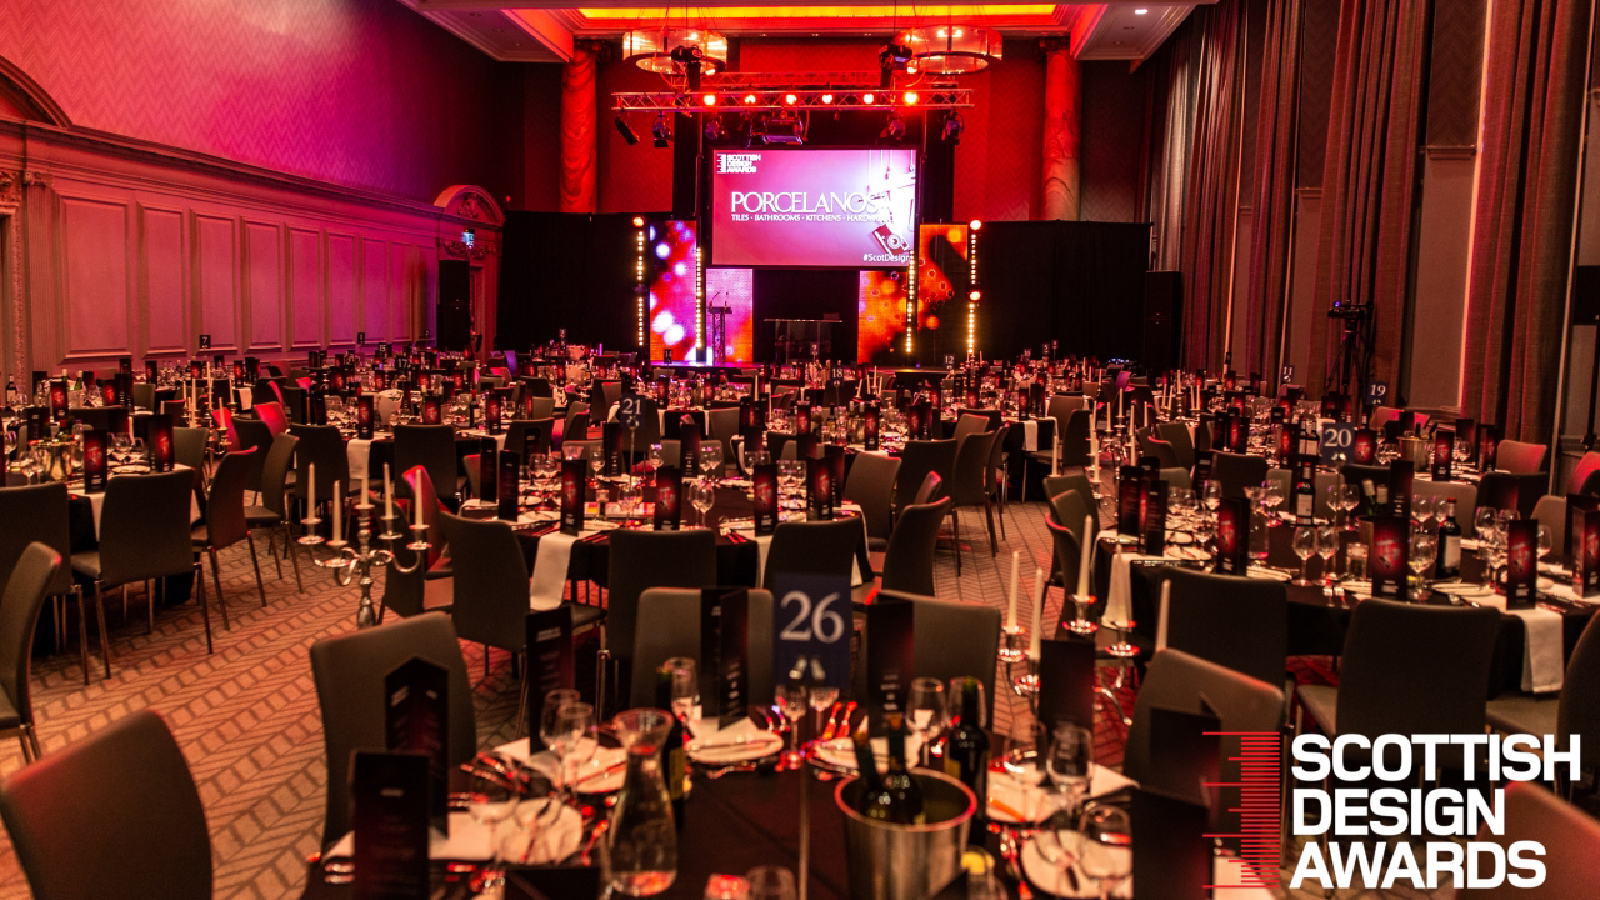 PORCELANOSA Scotland sponsors the Scottish Design Awards